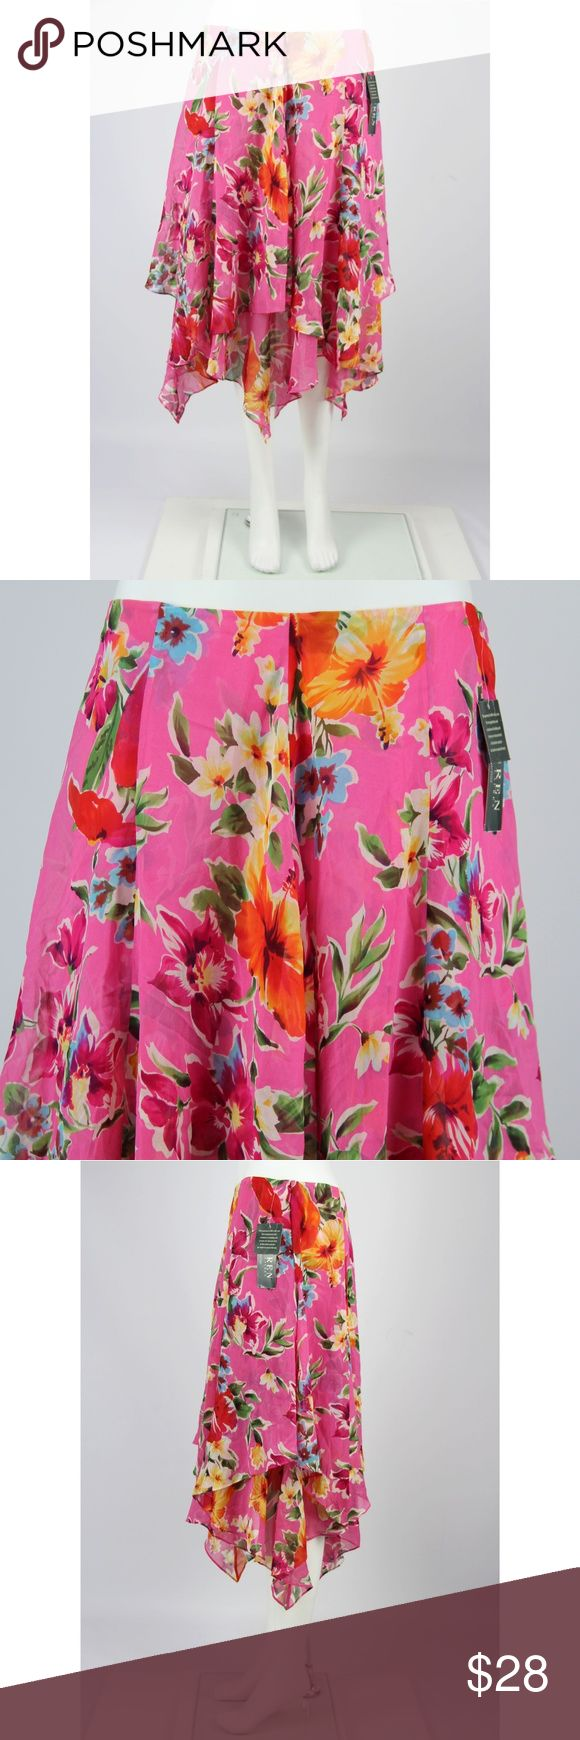 """Lauren Ralph Lauren NWT Pink Floral Silk Skirt NWT Lauren Ralph Lauren 100% Silk Floral Handkerchief Skirt  Size: 12   100% Silk Lining:  100% Polyester Made in China  Color: Pink floral print  Brand new with tags.  Measurements: Waist - 16"""" Hips - 27.5"""" Length (rear - top middle to hem) - 31.5"""" (longest point)  Inventory E9 Lauren Ralph Lauren Skirts Asymmetrical"""